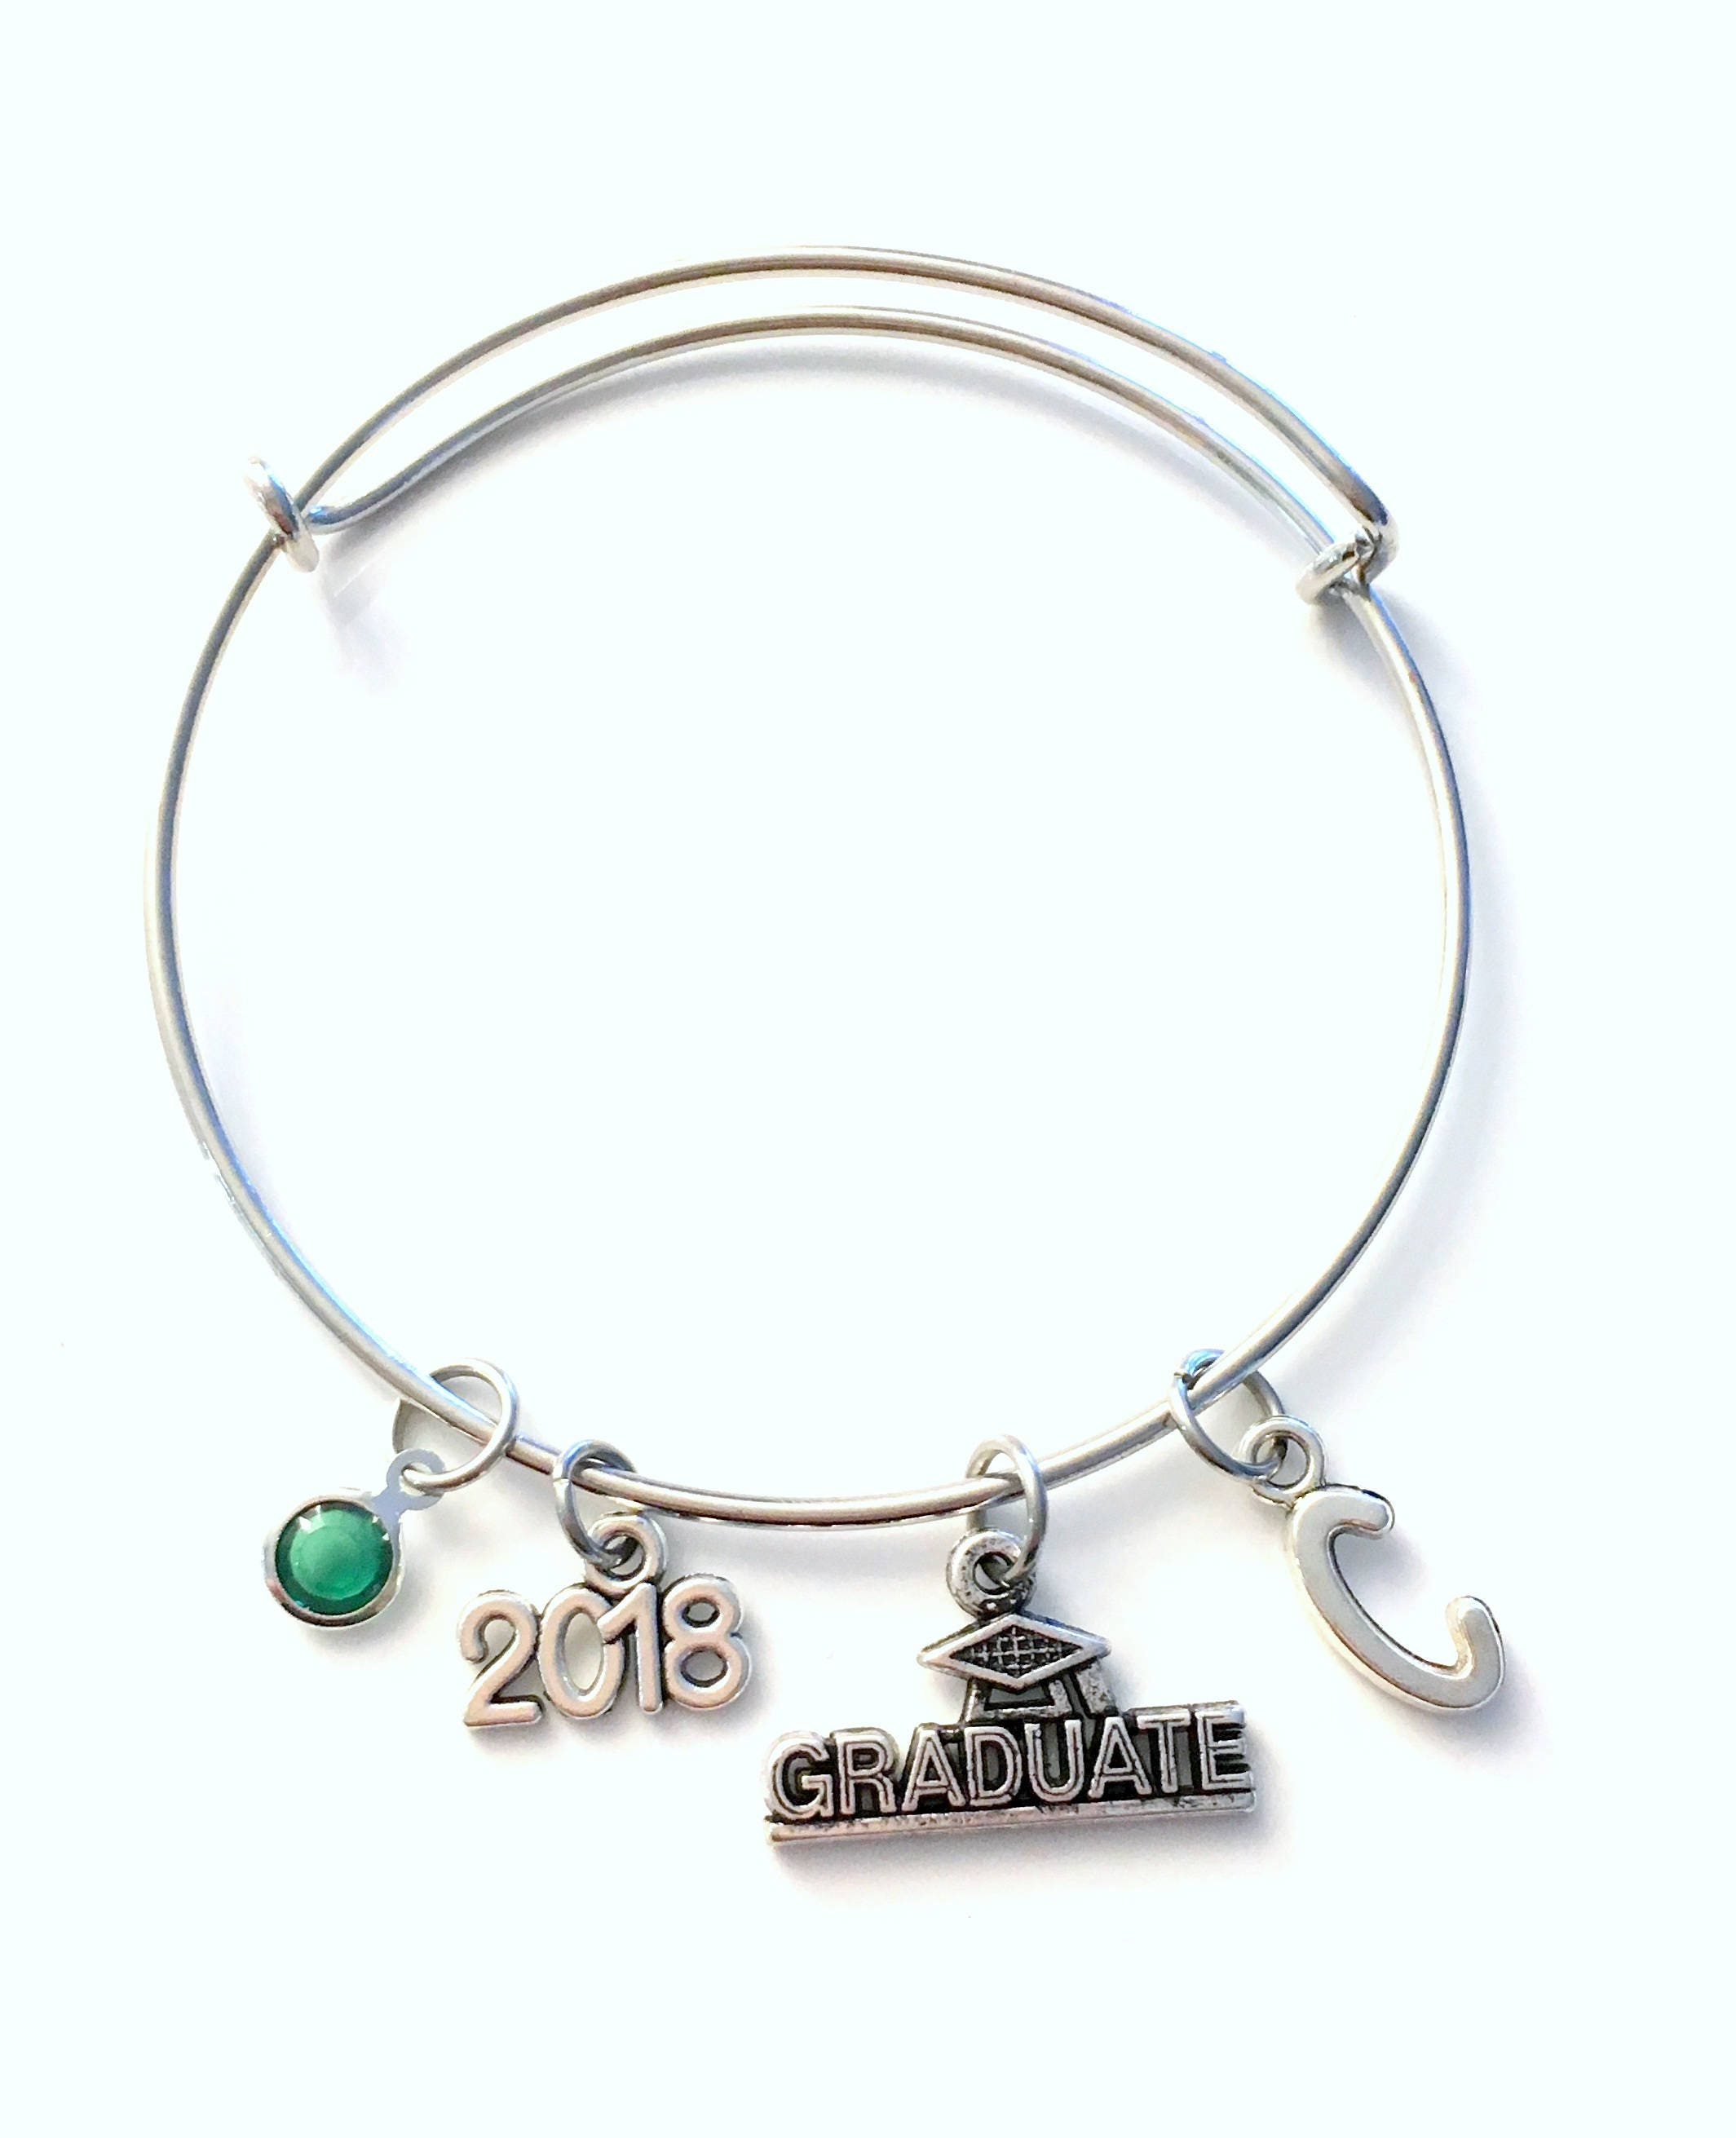 freckle face jewellery bracelet bangle products graduation image